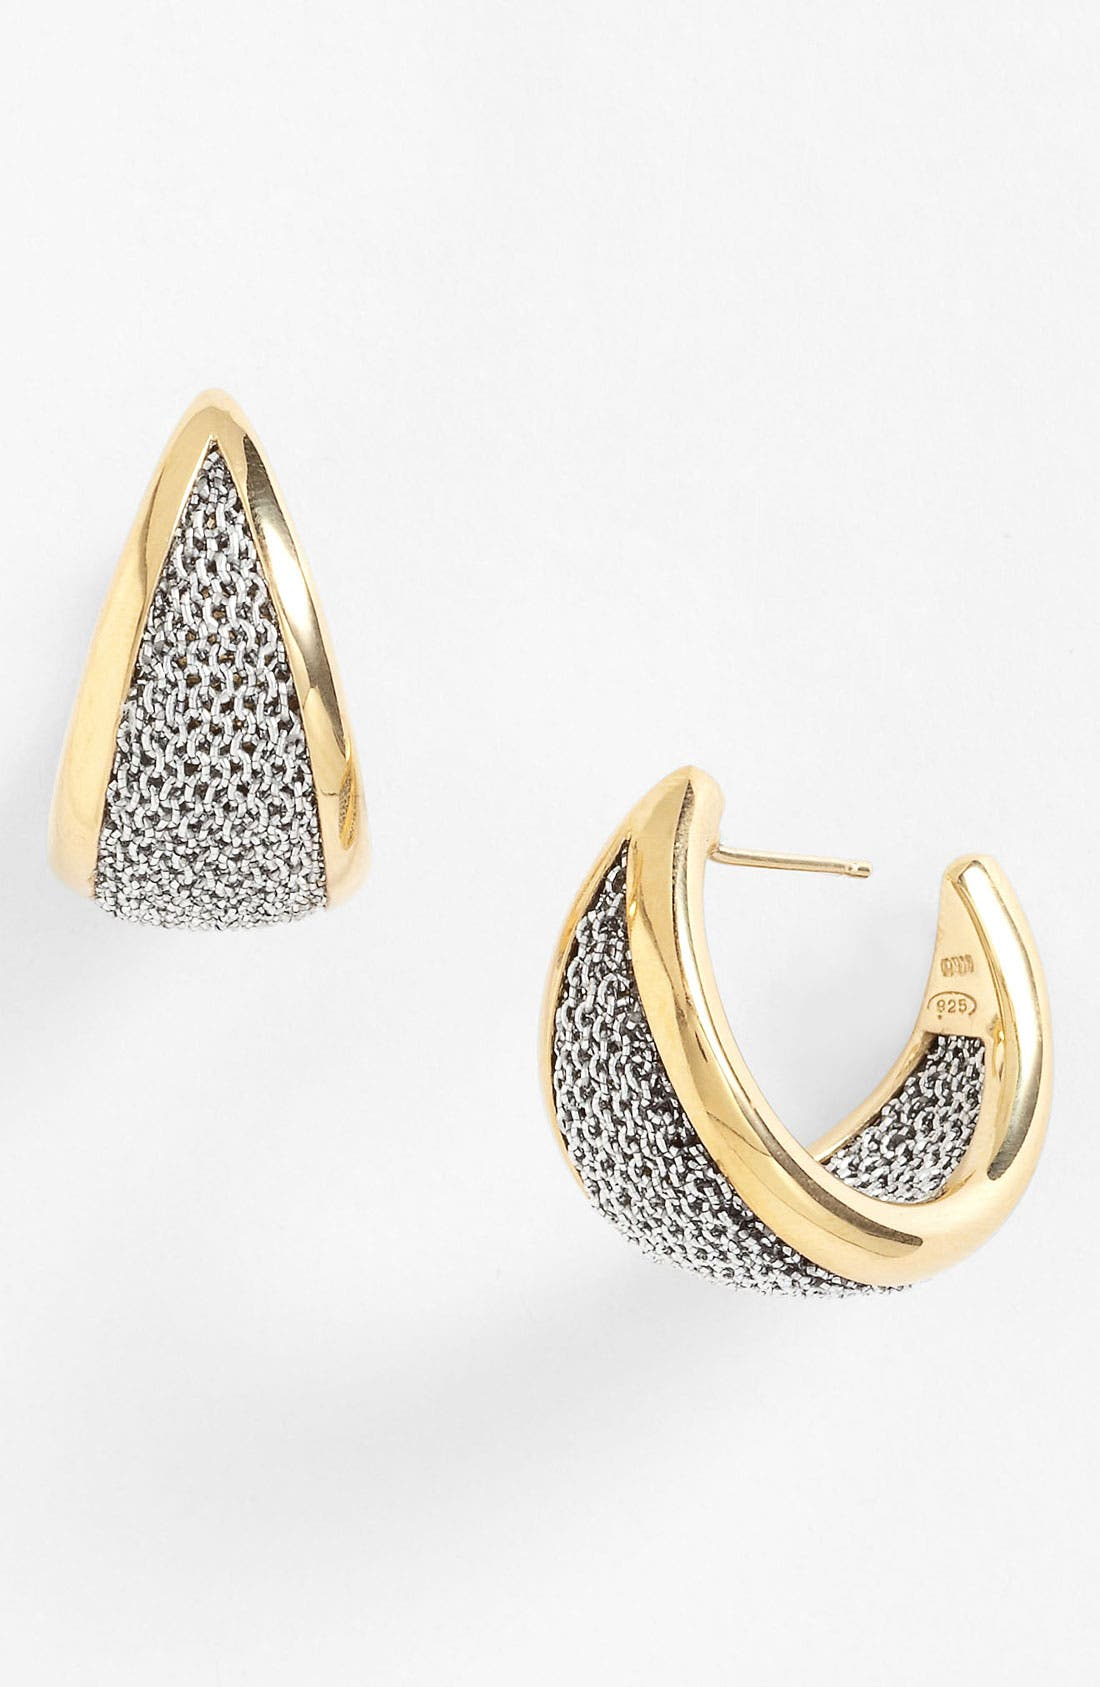 Alternate Image 1 Selected - Adami & Martucci 'Mesh' Hoop Earrings (Nordstrom Exclusive)